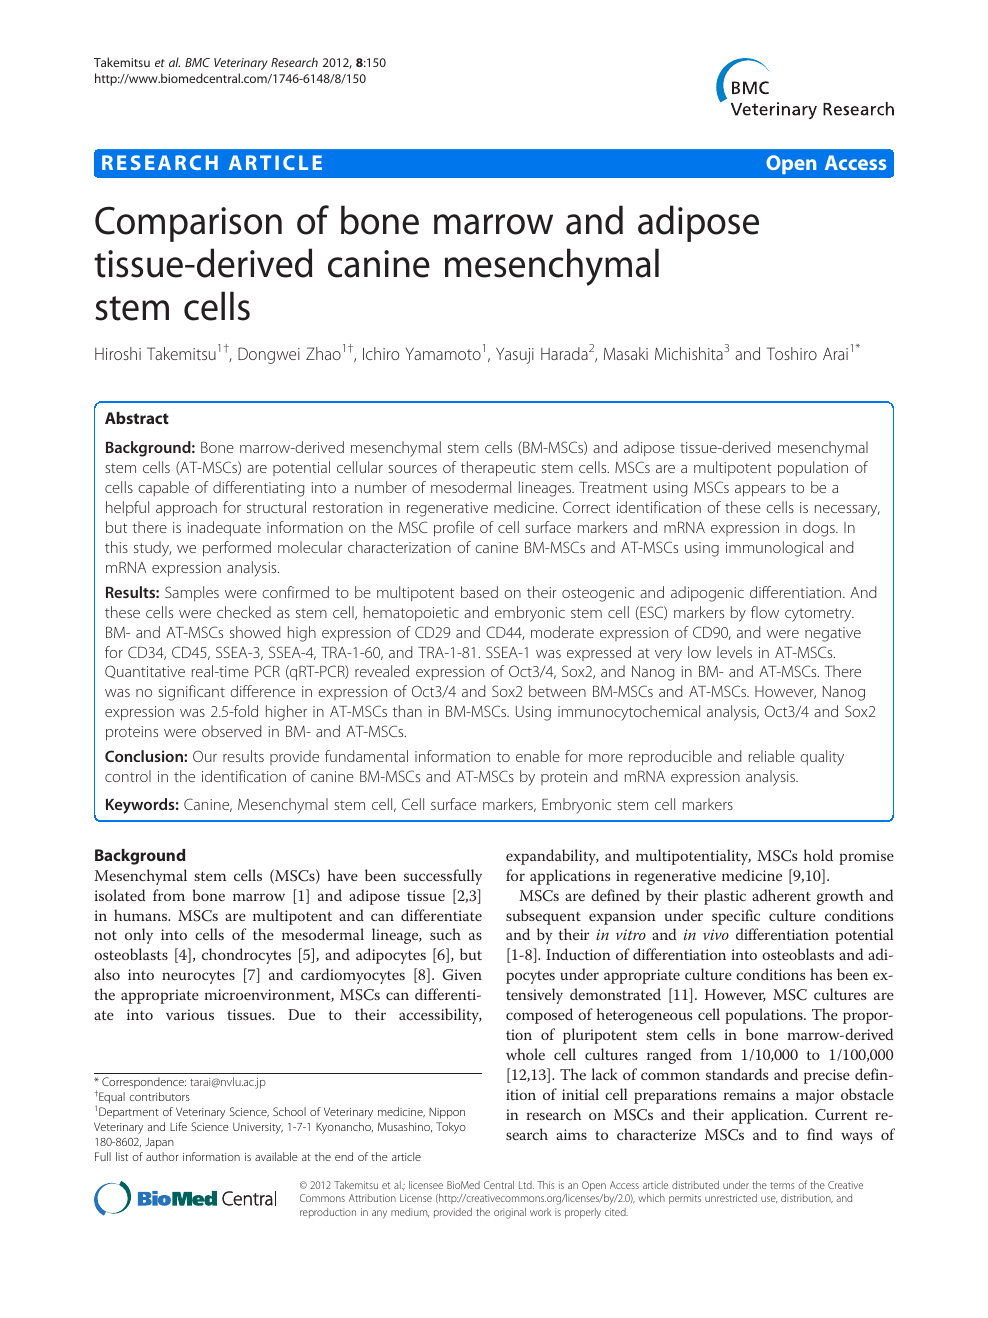 Comparison of bone marrow and adipose tissue-derived canine